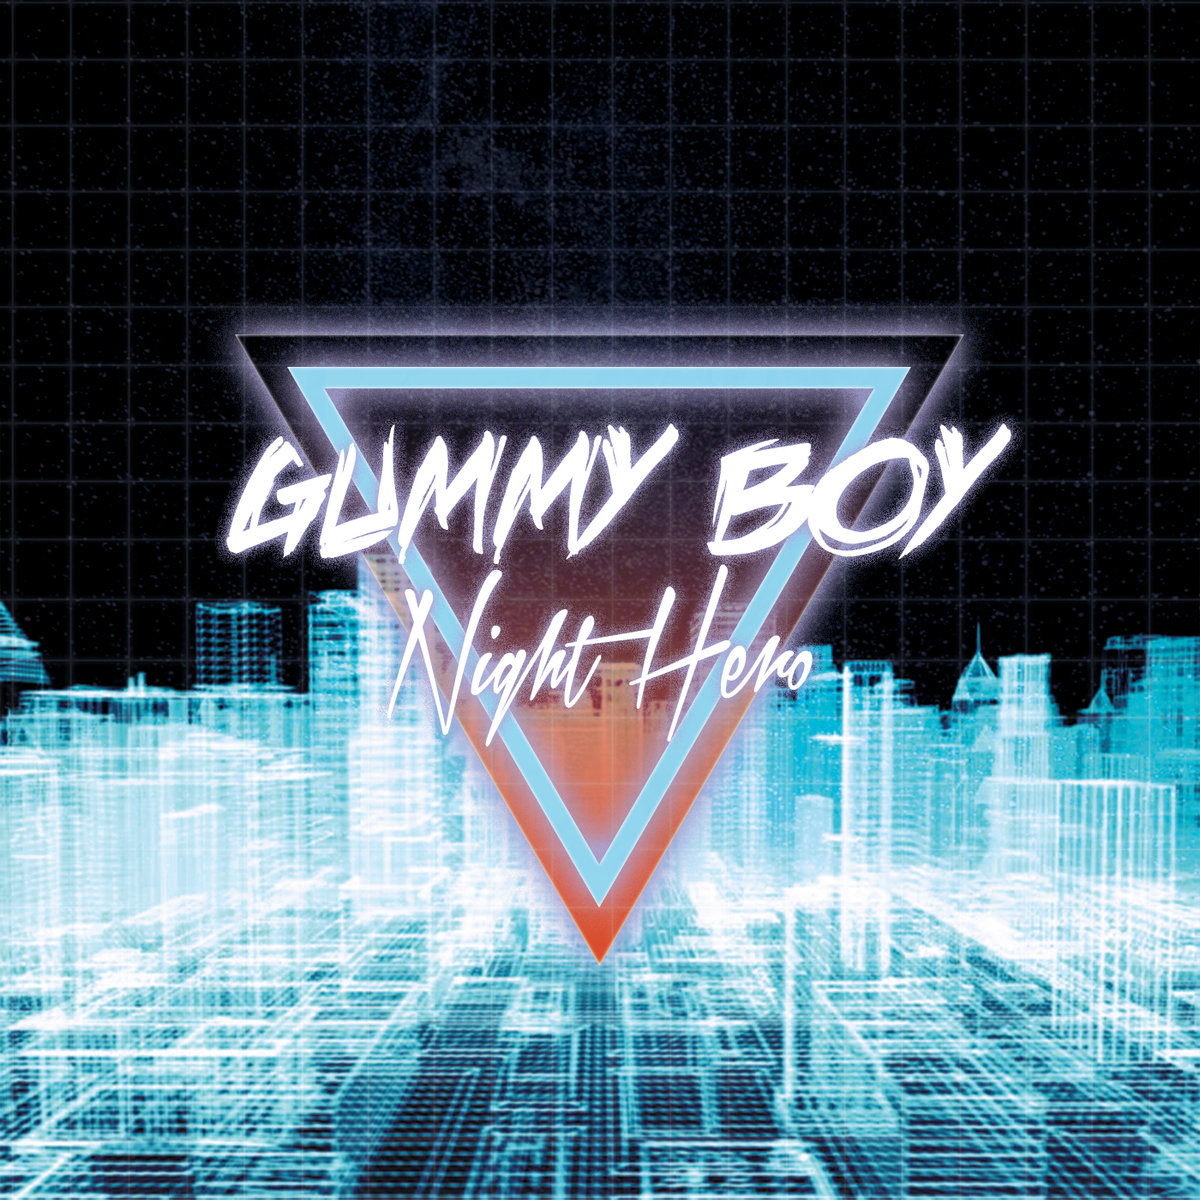 Gummy Boy - Night Hero